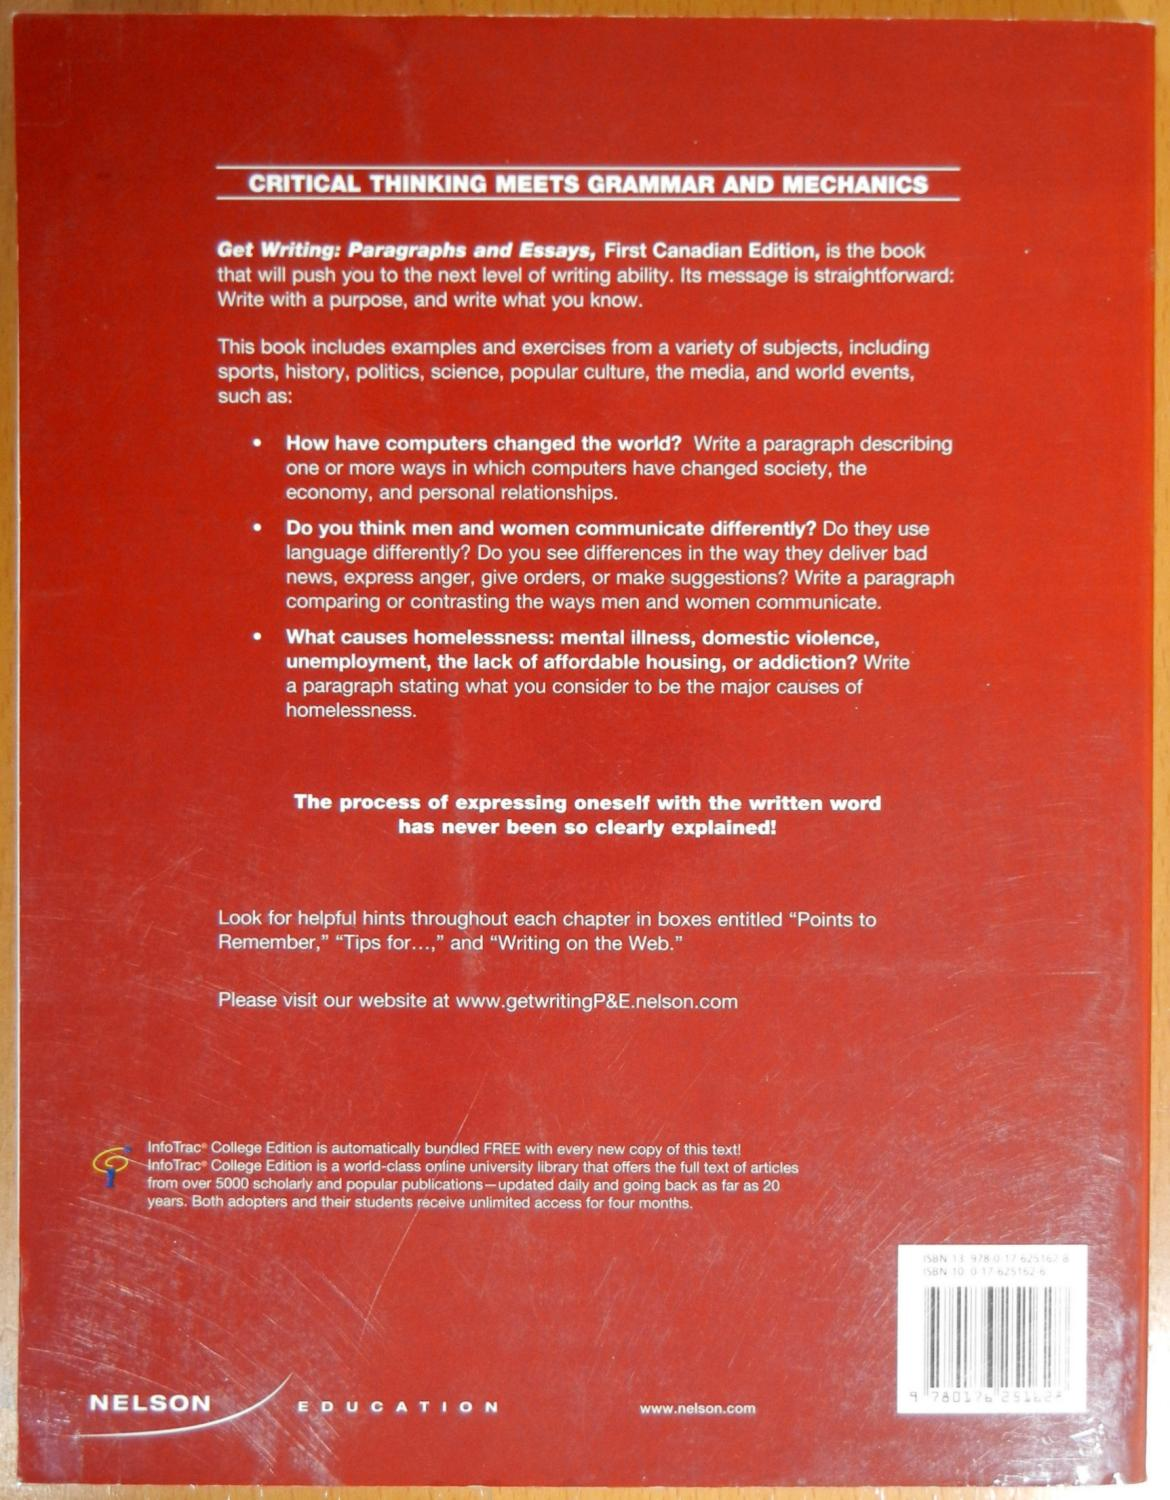 Get Writing: Paragraphs and Essays (First Canadian Edition